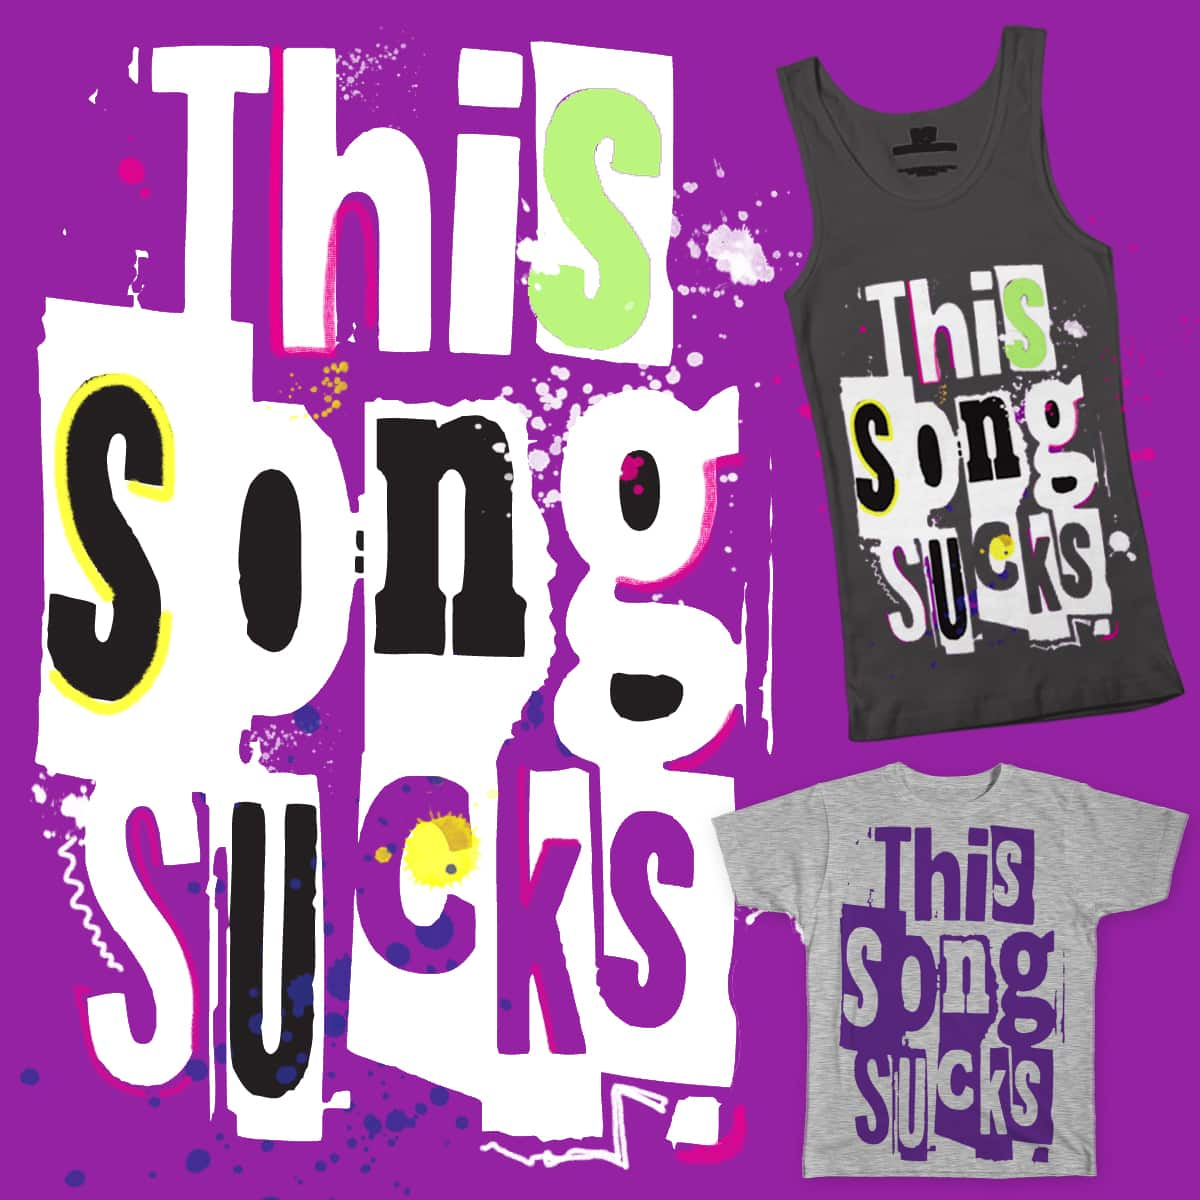 This Song Sucks by theotherlindaroesch on Threadless